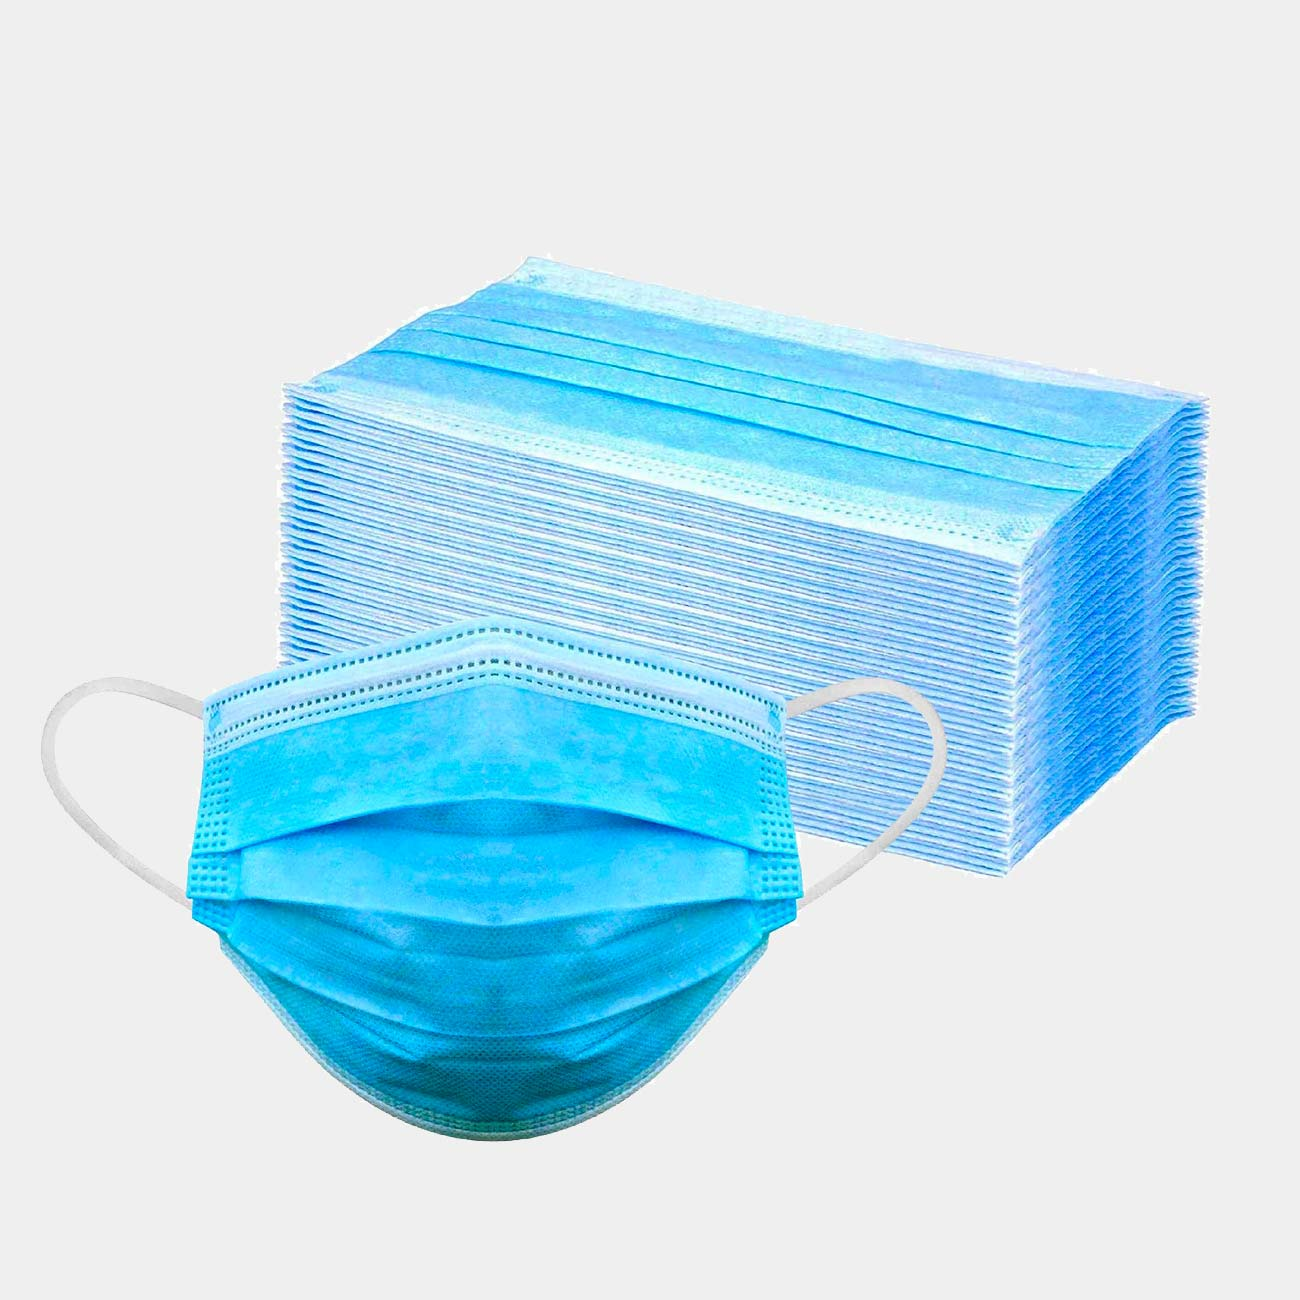 50 per box Disposable Filter Mask 3 Ply - Cleaning Ideas